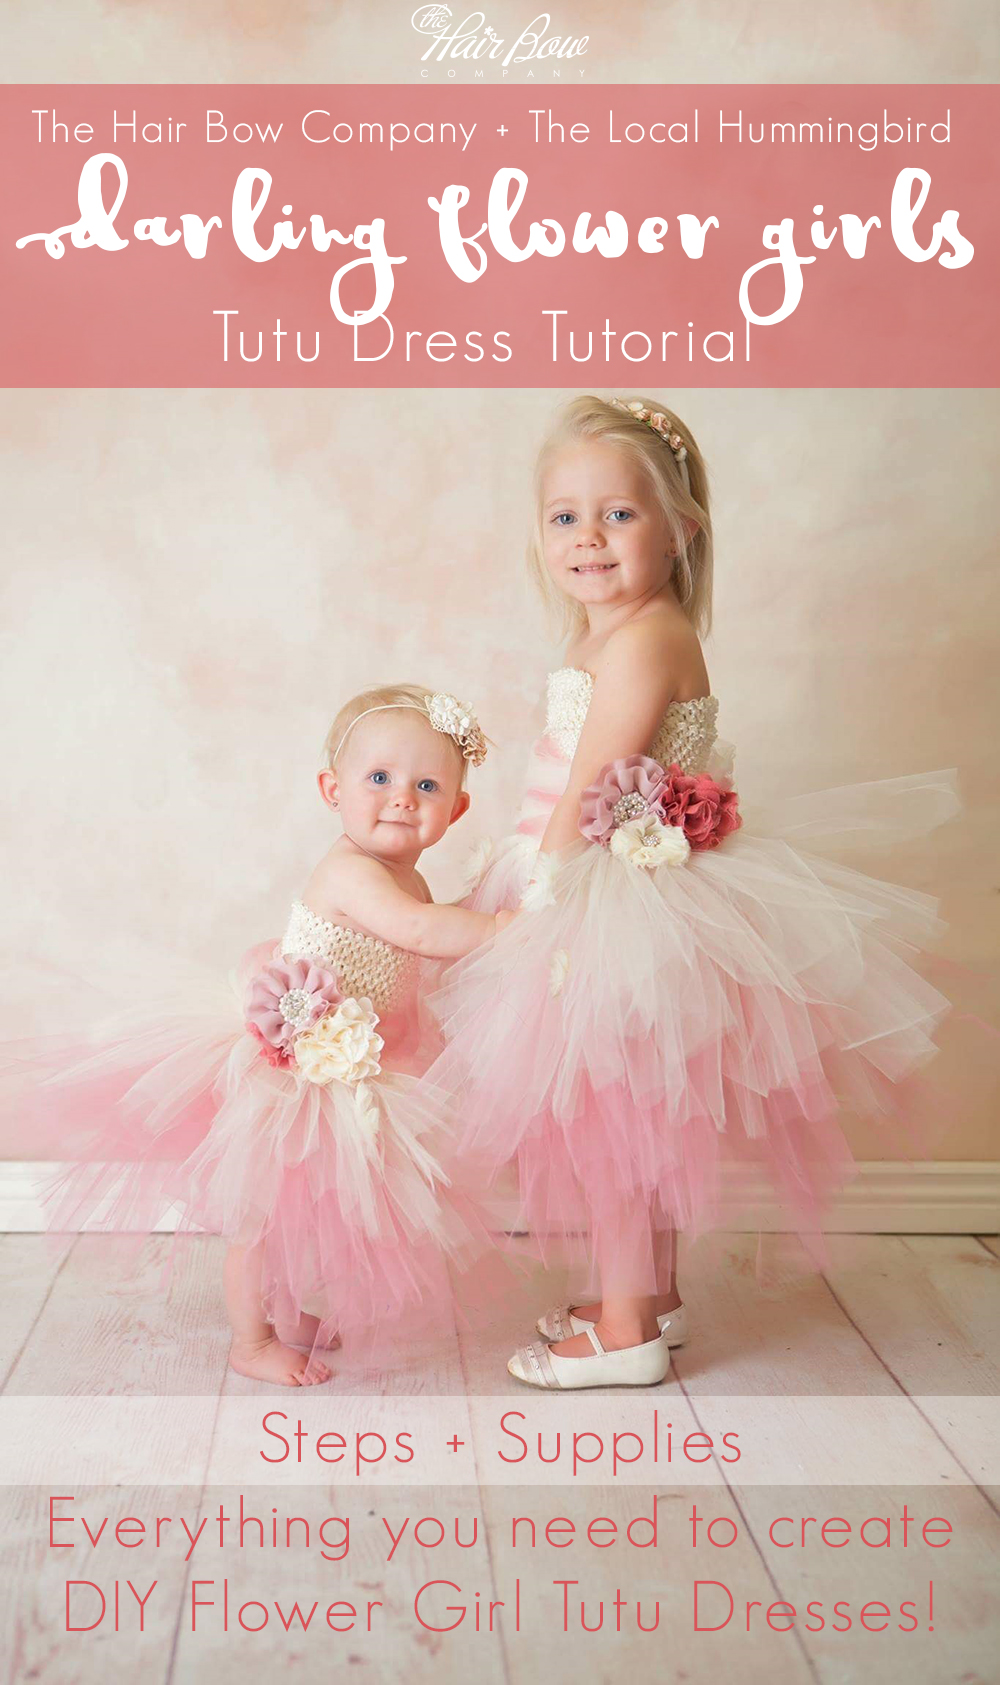 Darling Flower Girl Tutu Dress Diy Tutorial The Hair Bow Company